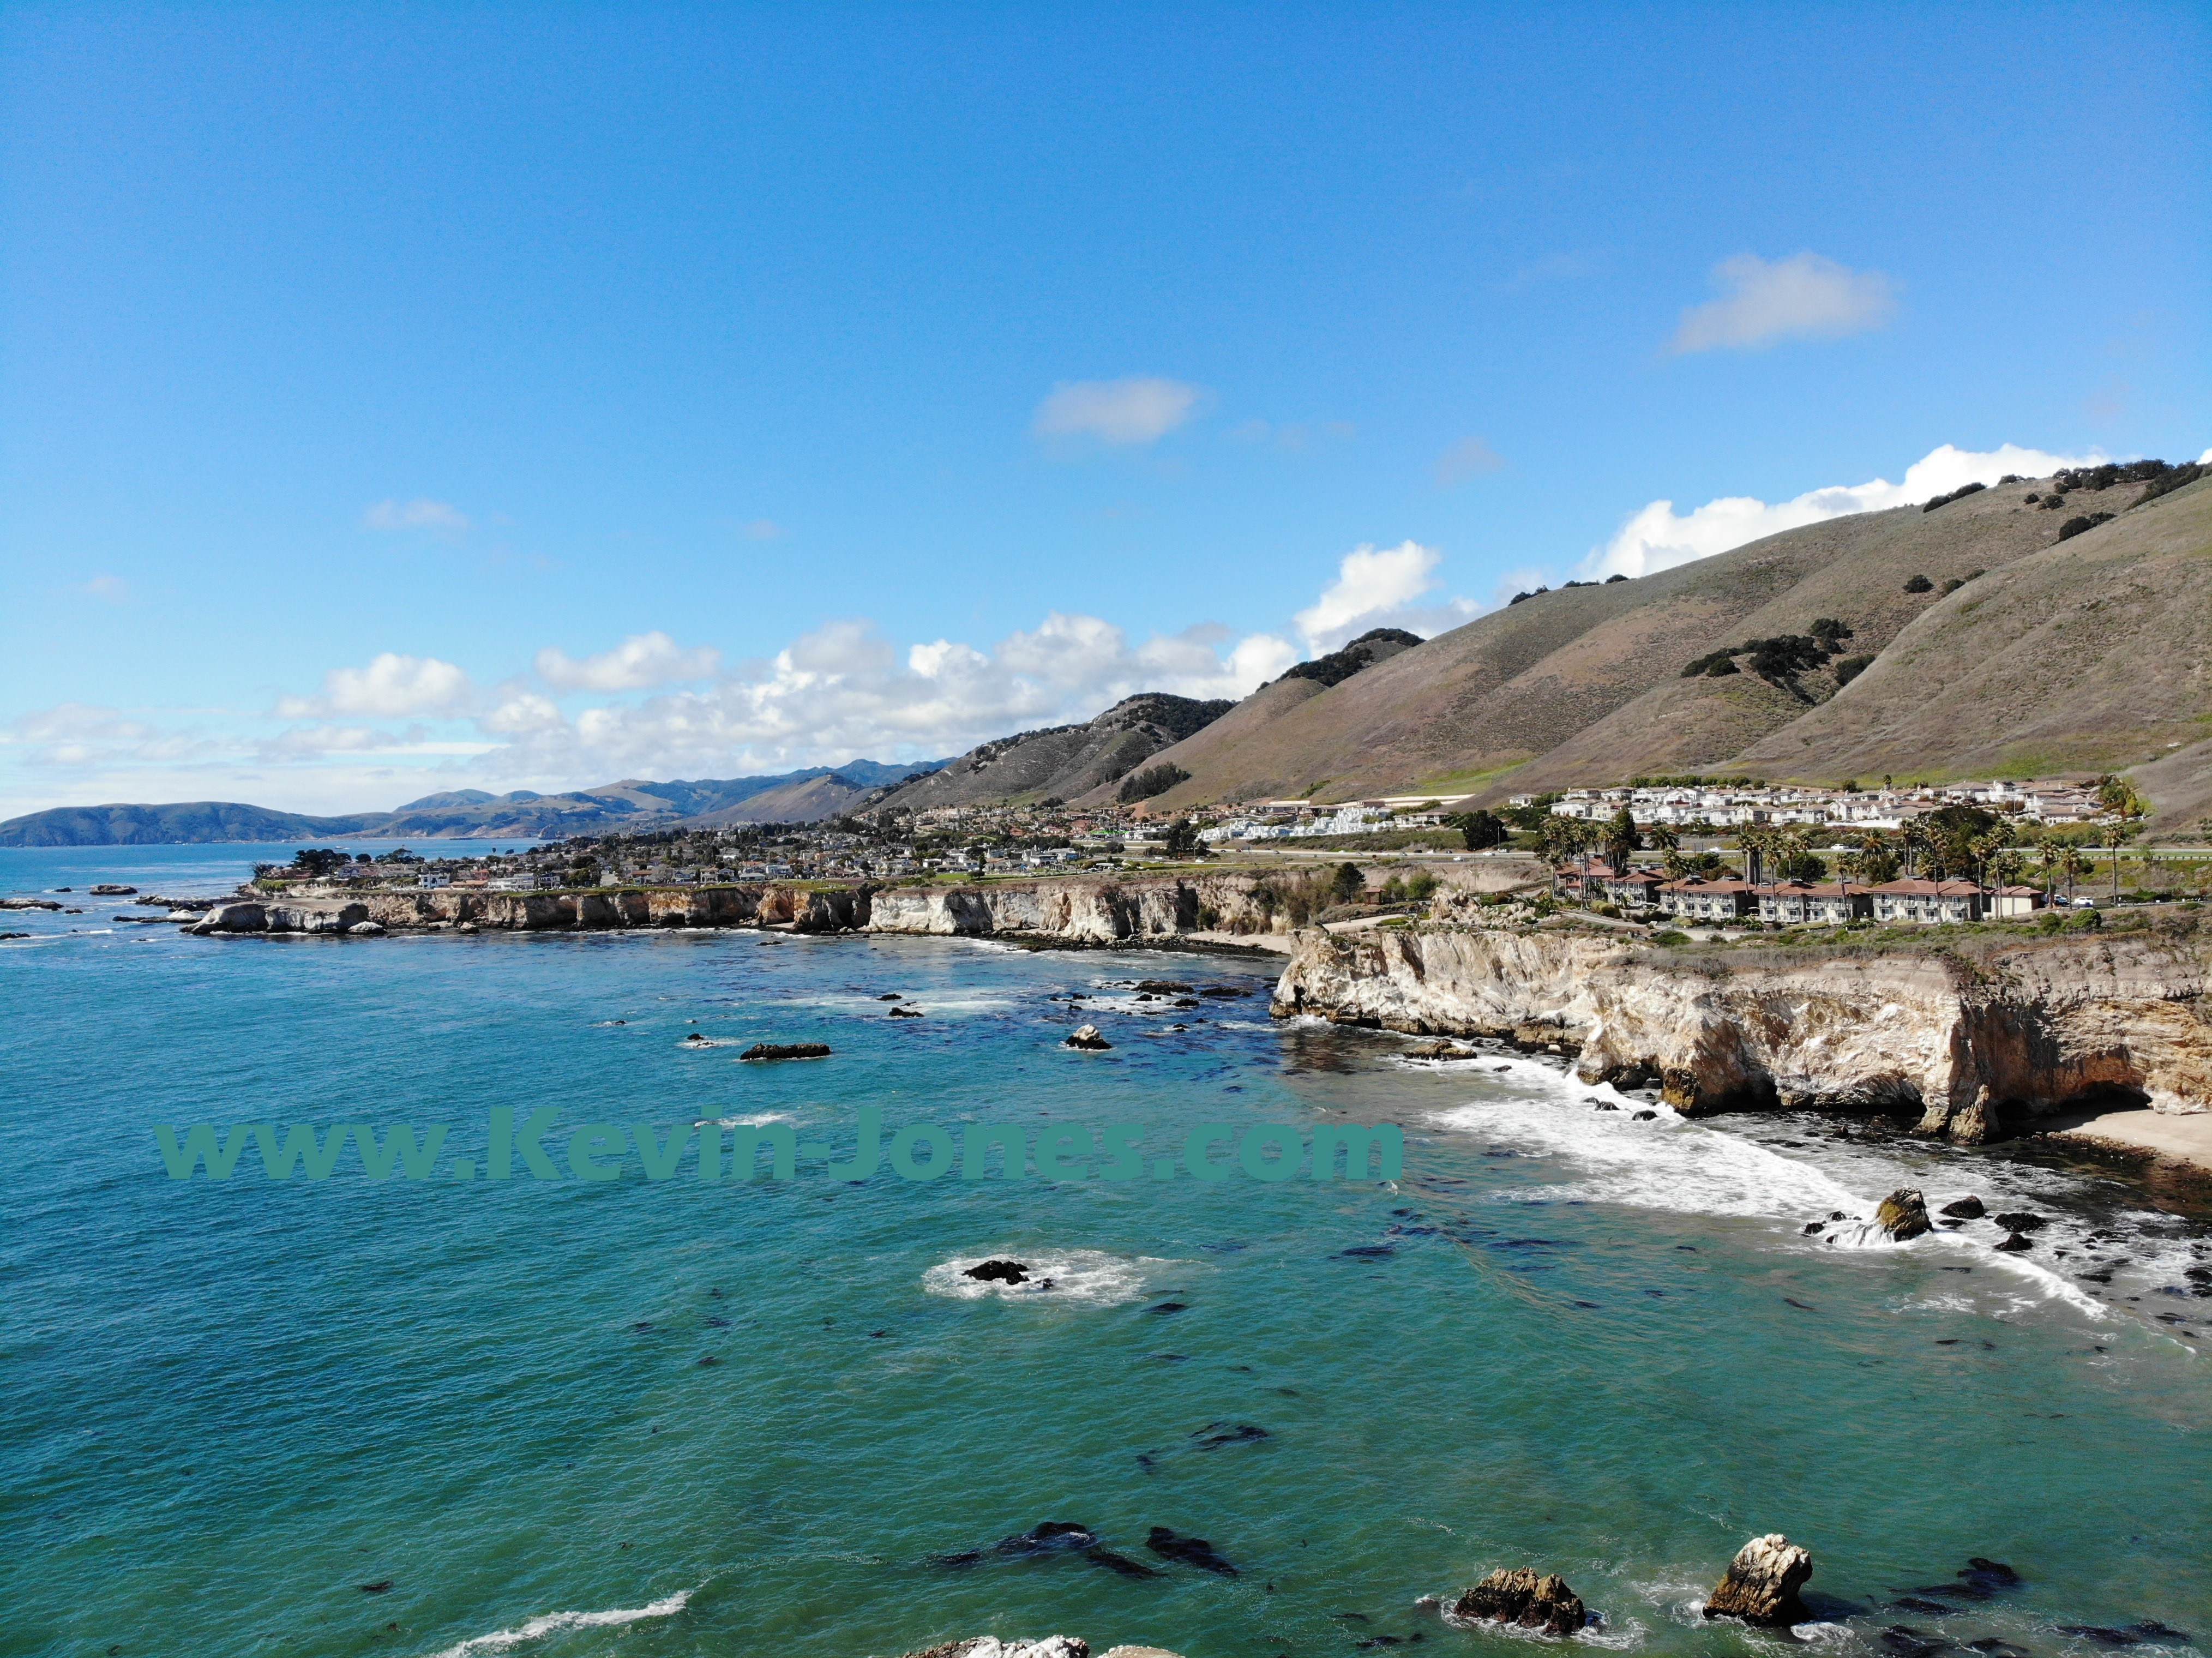 Thumbnail image for Pismo Beach – Shell Beach Aerial